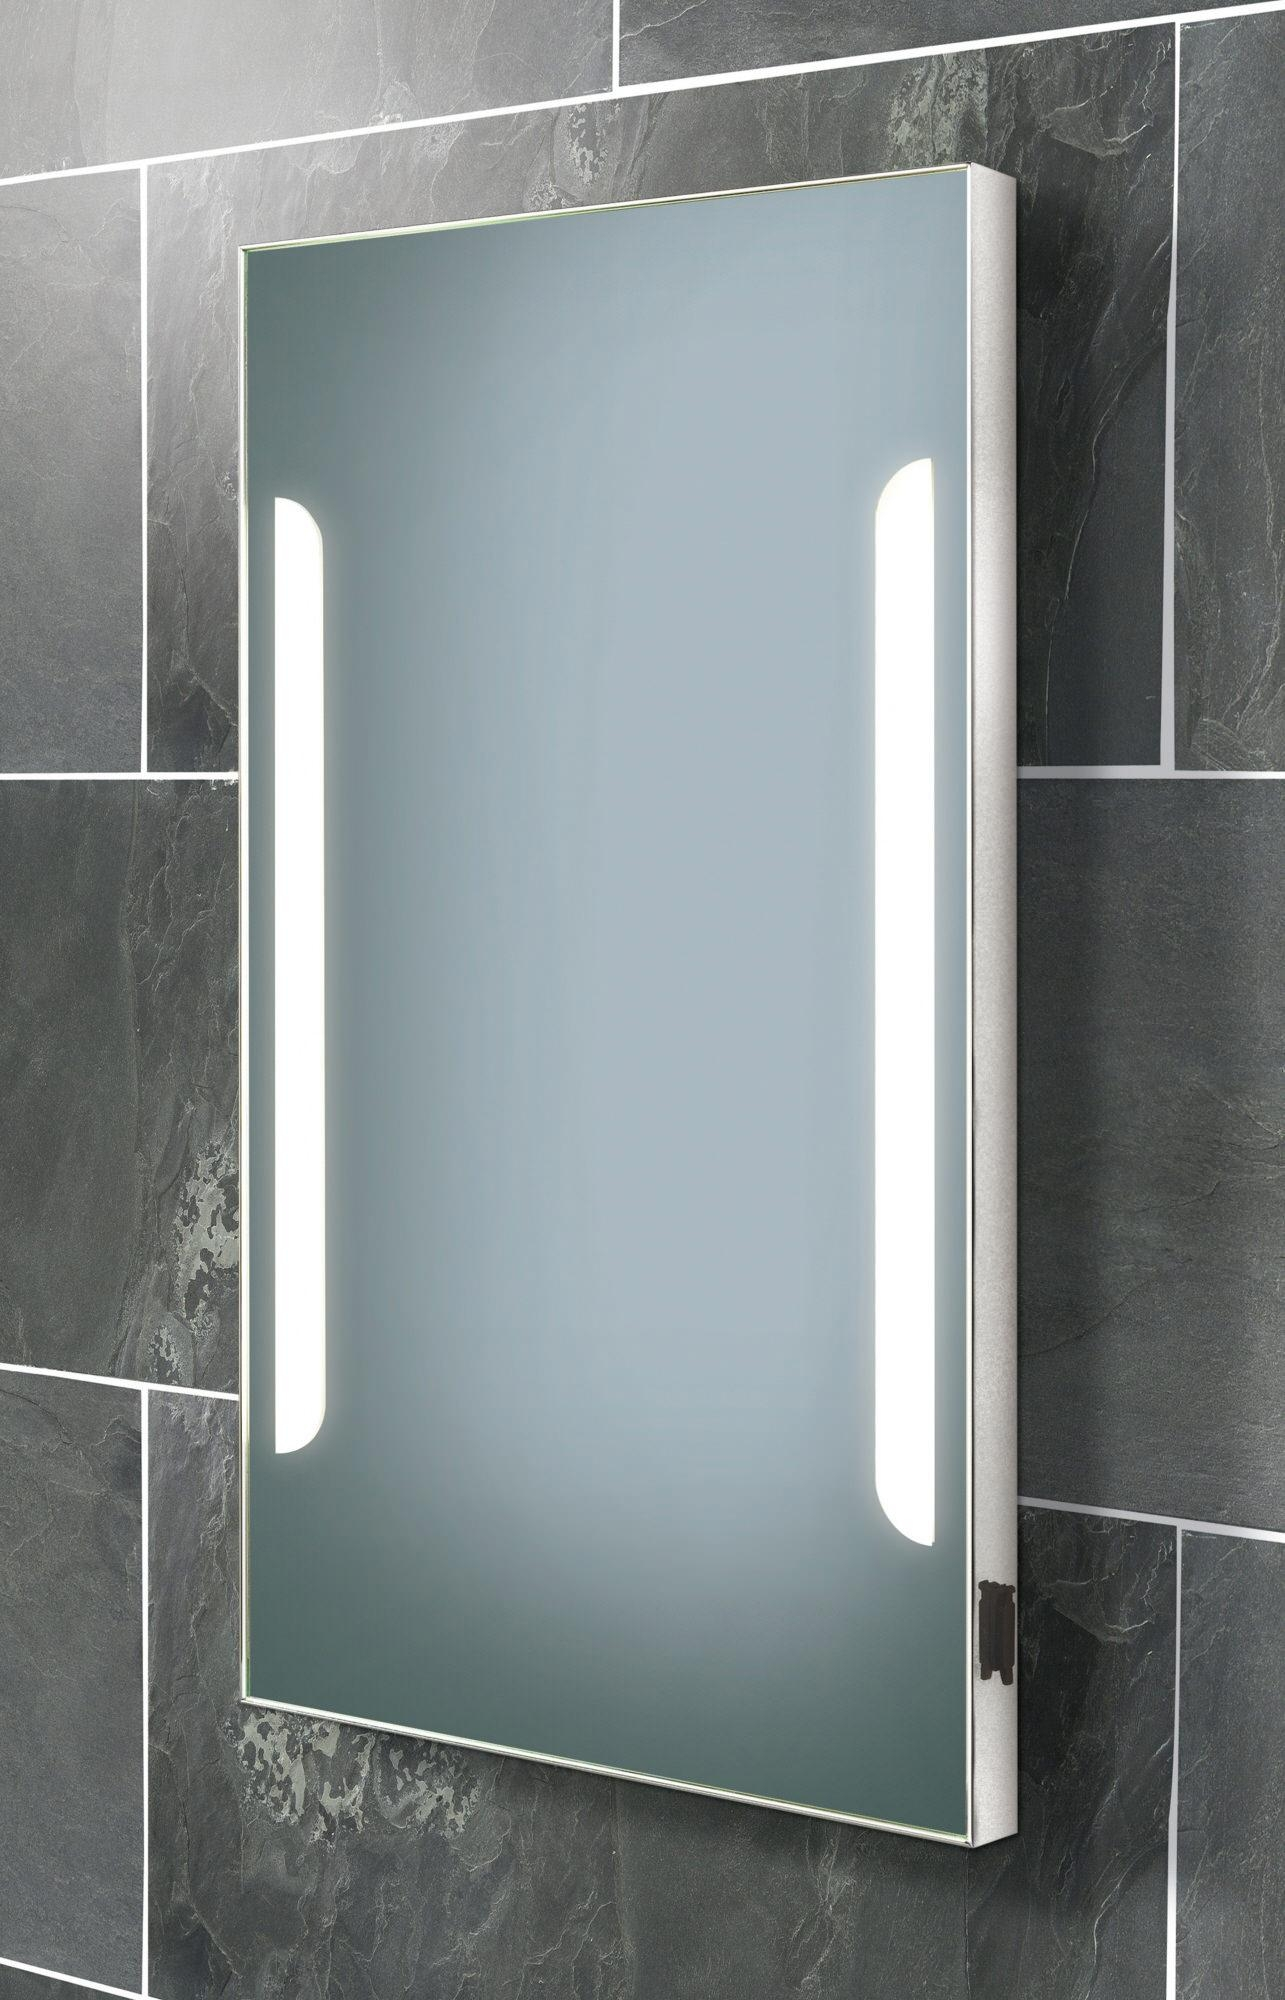 Bathroom : Beautiful Countertop Makeup Mirrors With Light Backlit Throughout Vanity Mirrors With Built In Lights (View 17 of 20)